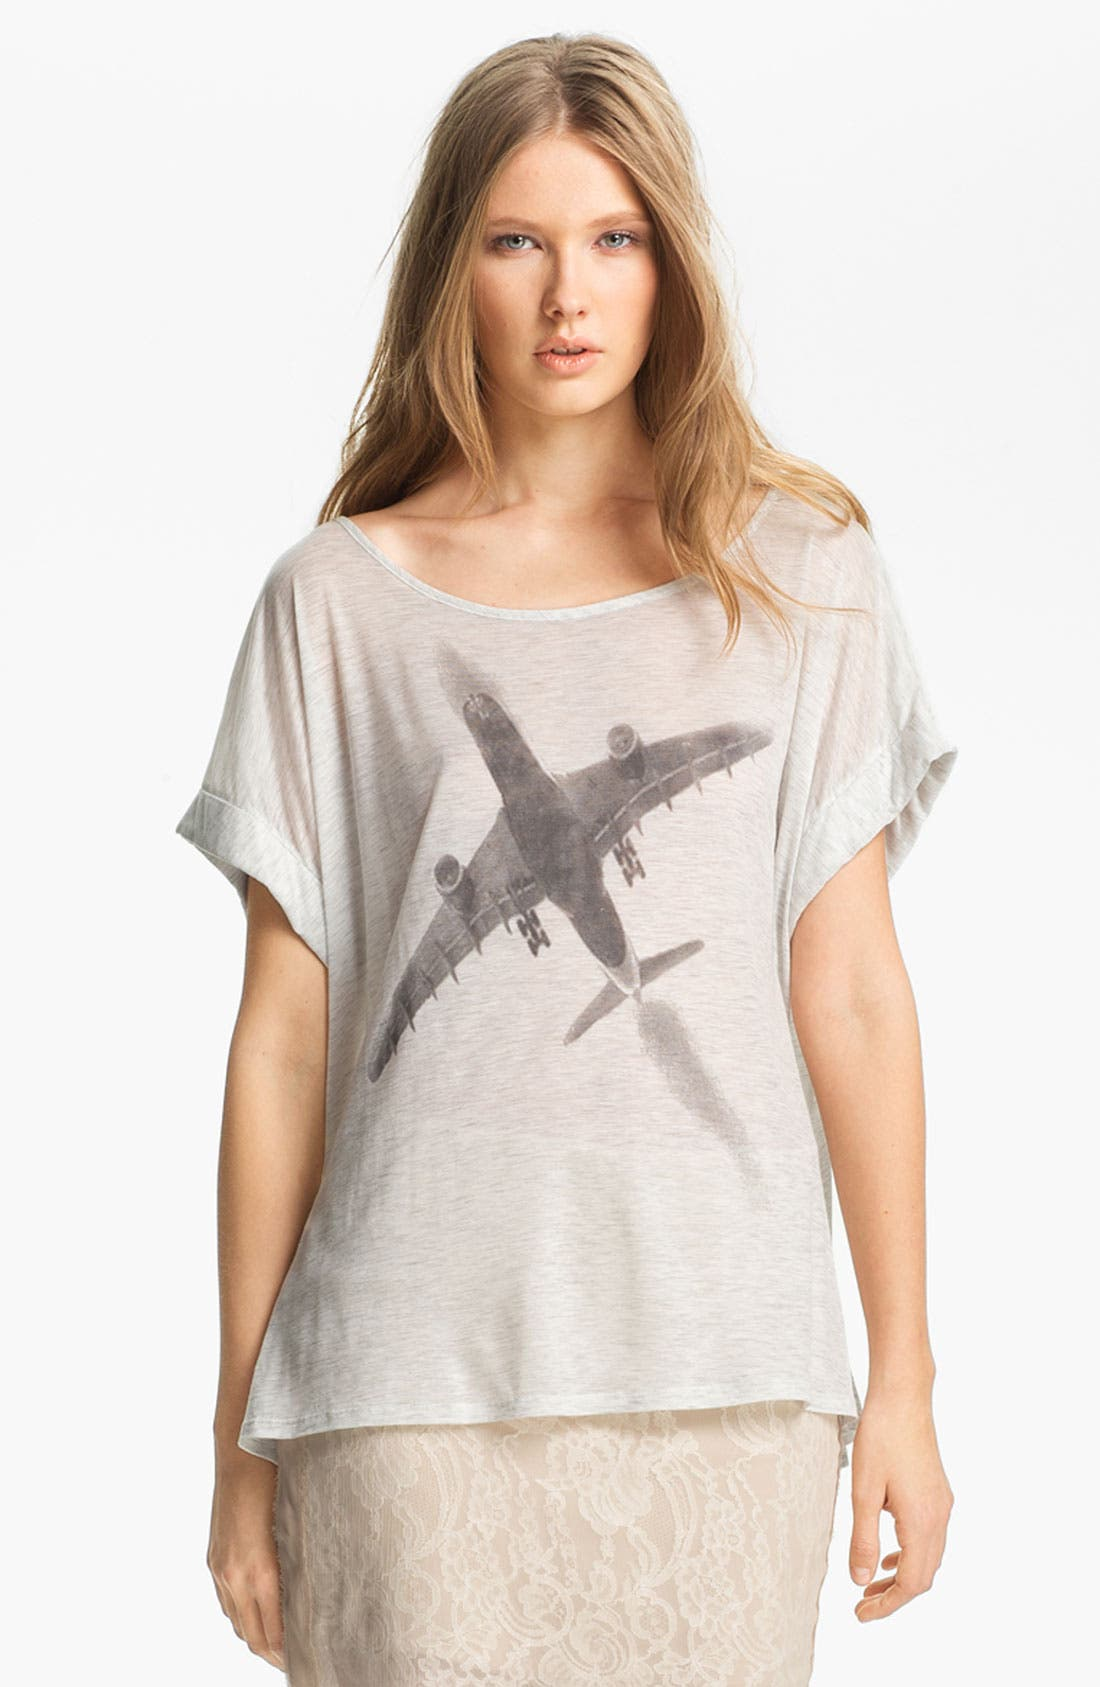 Alternate Image 1 Selected - Haute Hippie 'Fly Away' Jersey Tee